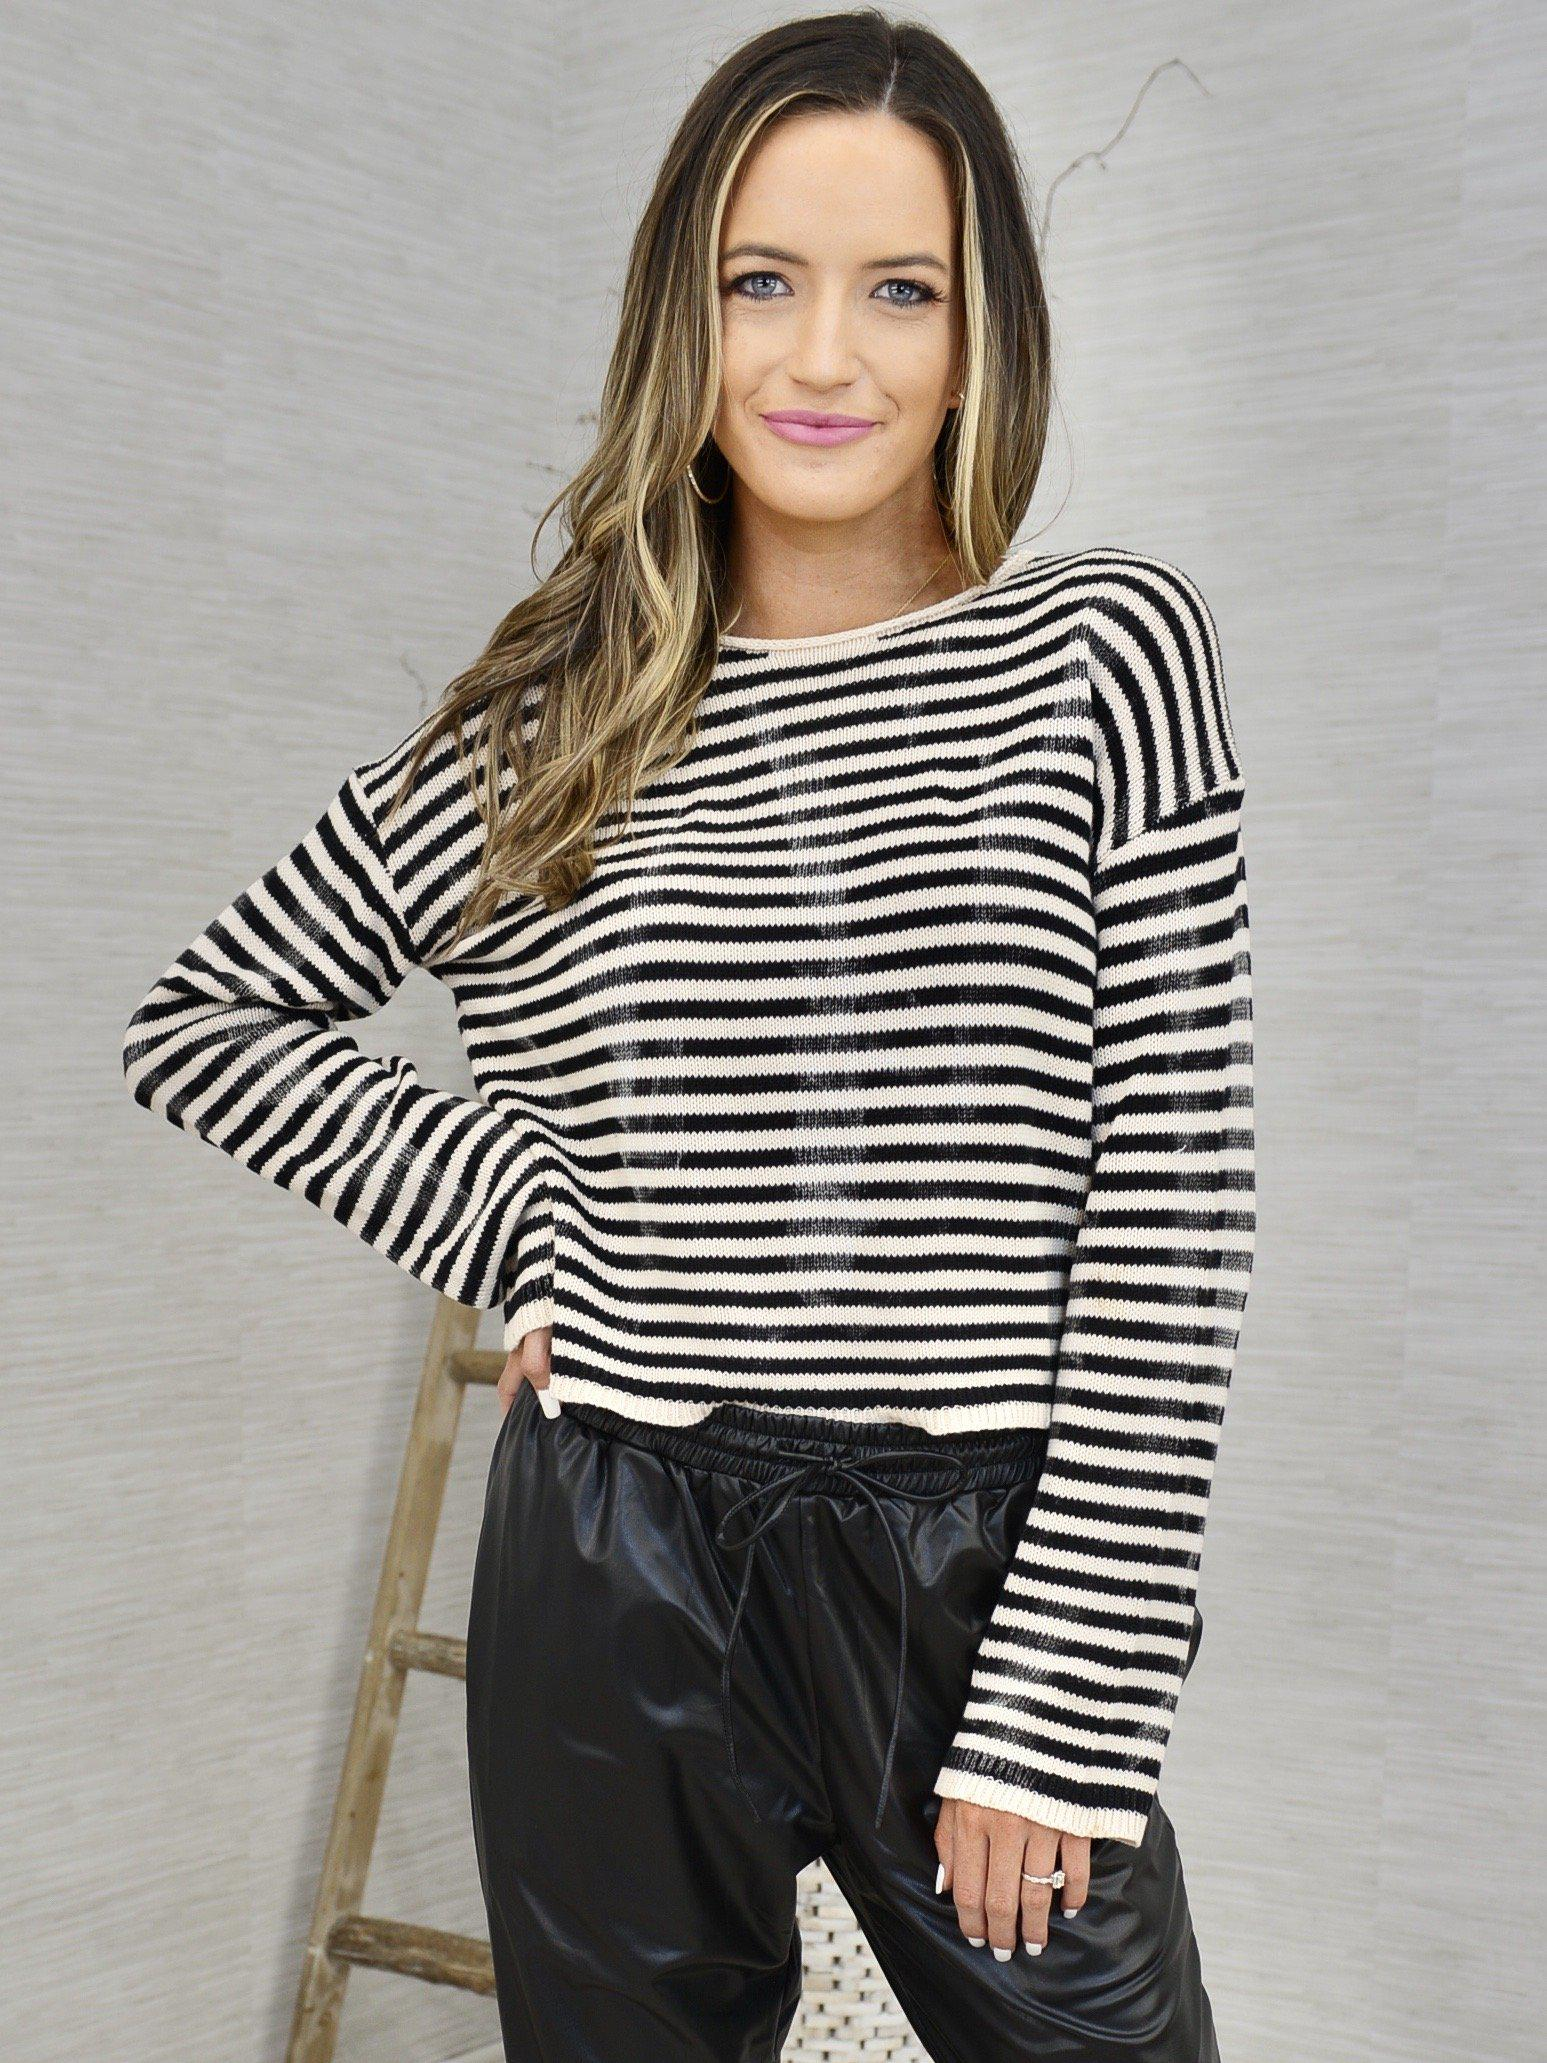 Stripe a Chord Sweater-Women's -New Arrivals-Runway Seven